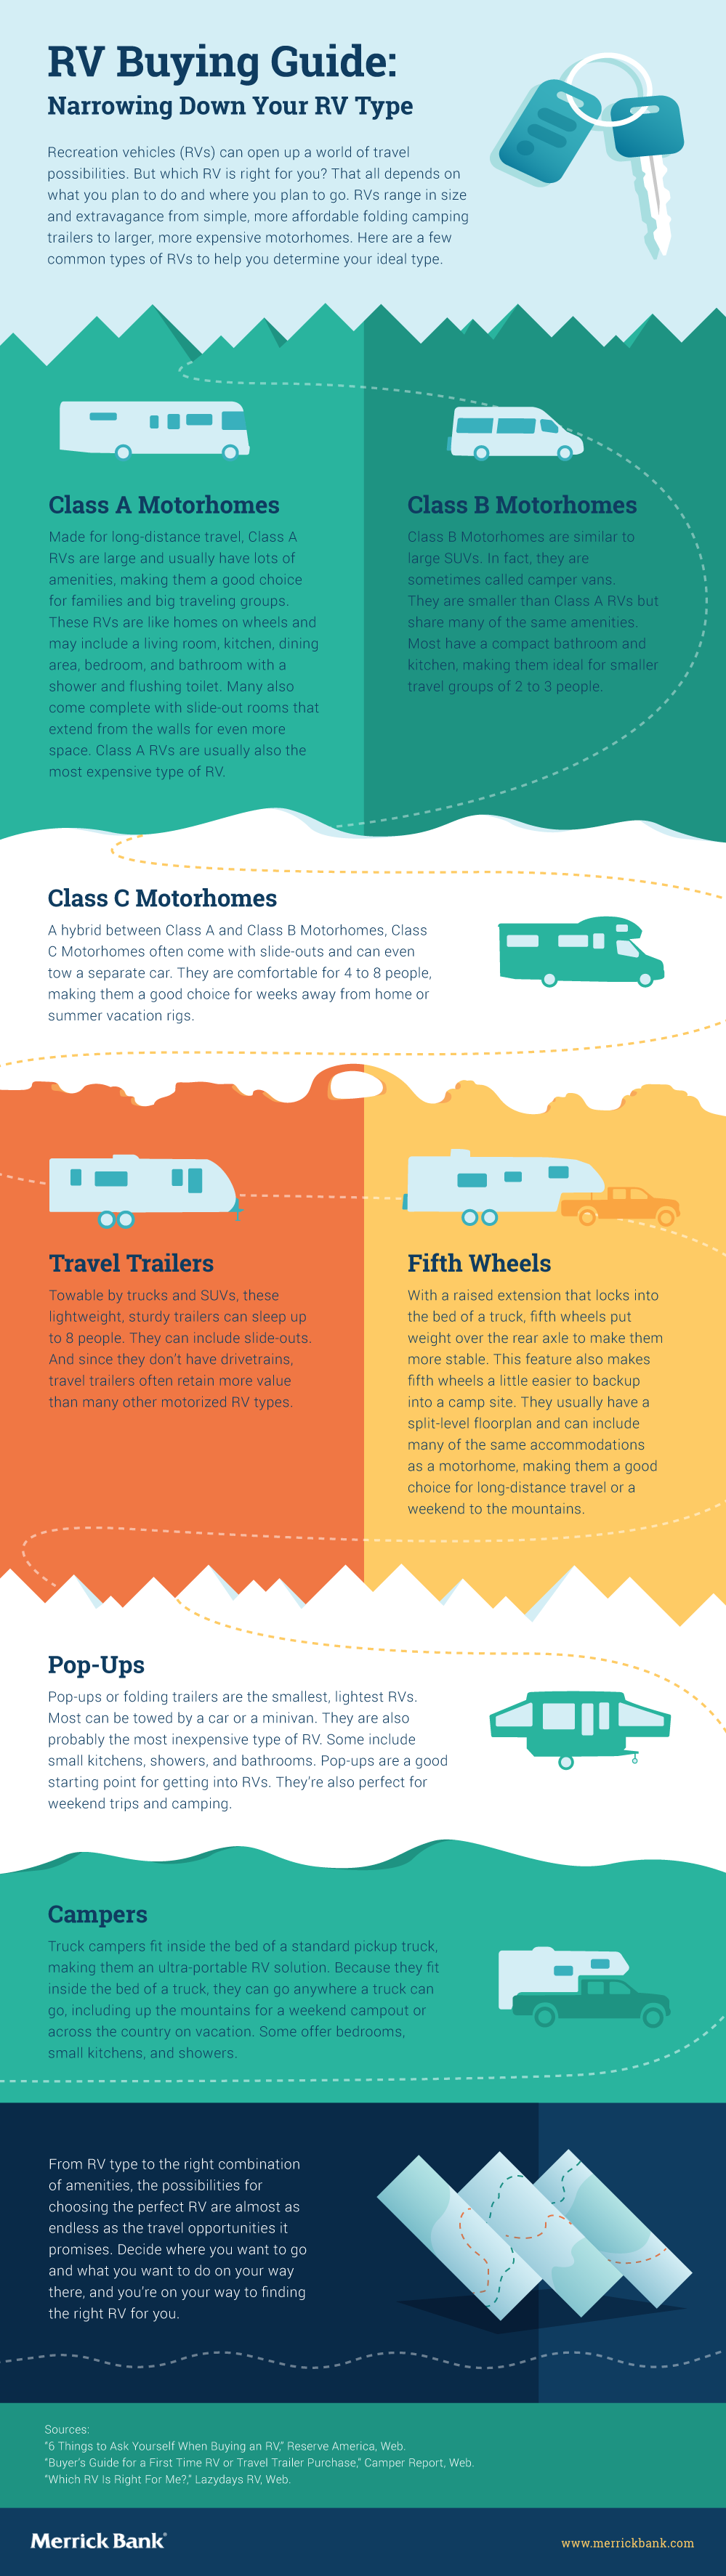 RV Buying Guide: Narrowing Down Your RV Type